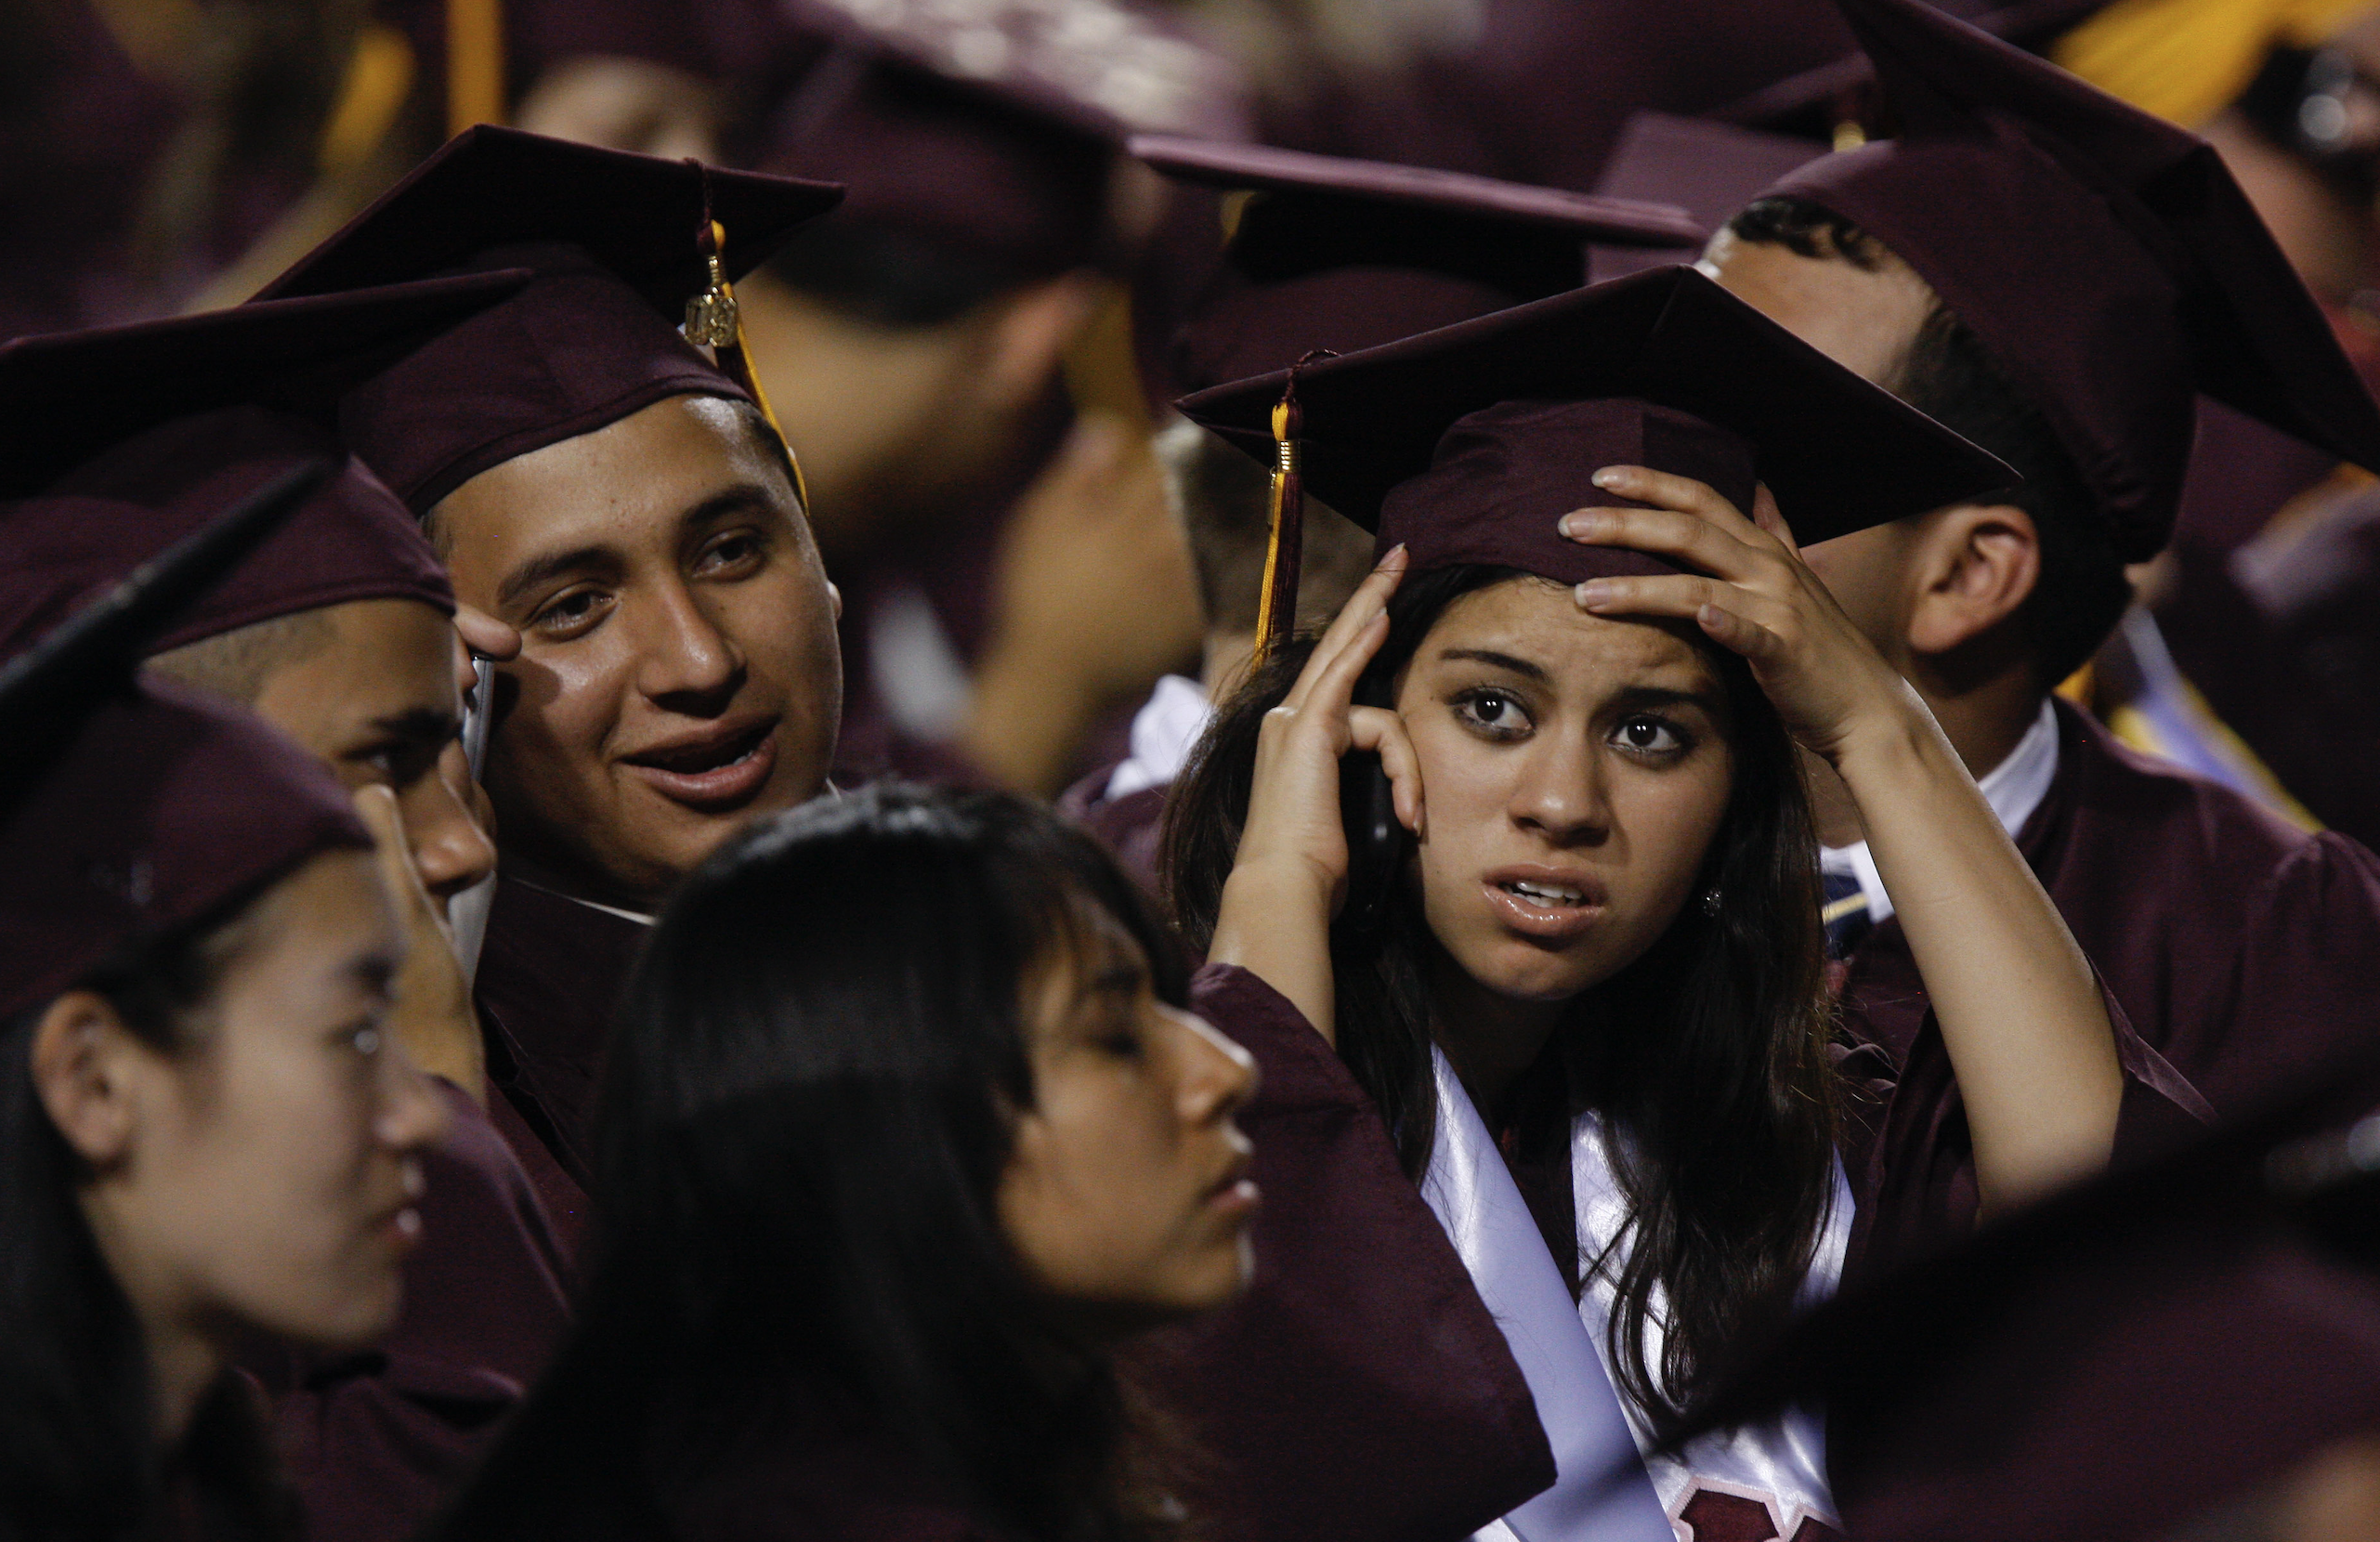 The unemployment rate for recent college graduates is getting even worse